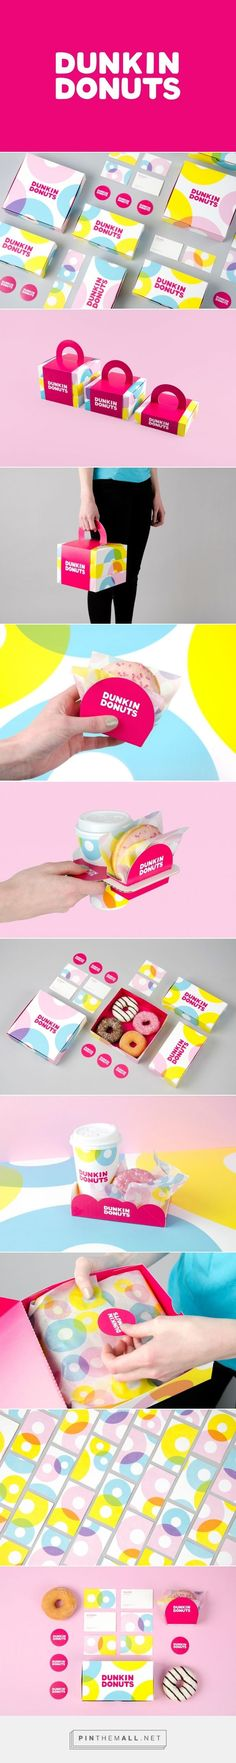 Dunkin Donuts (Student Project) - Packaging of the World